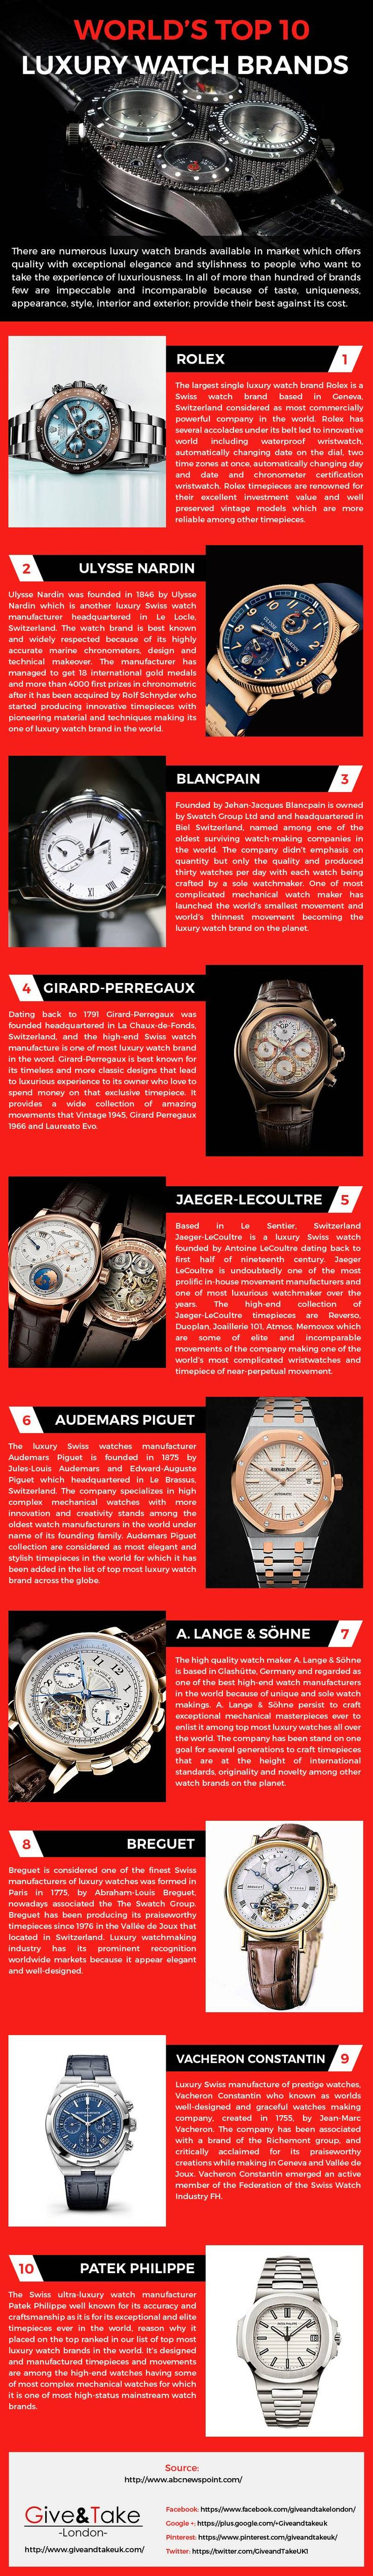 World's Top 10 Luxury Watch Brands #Infographic